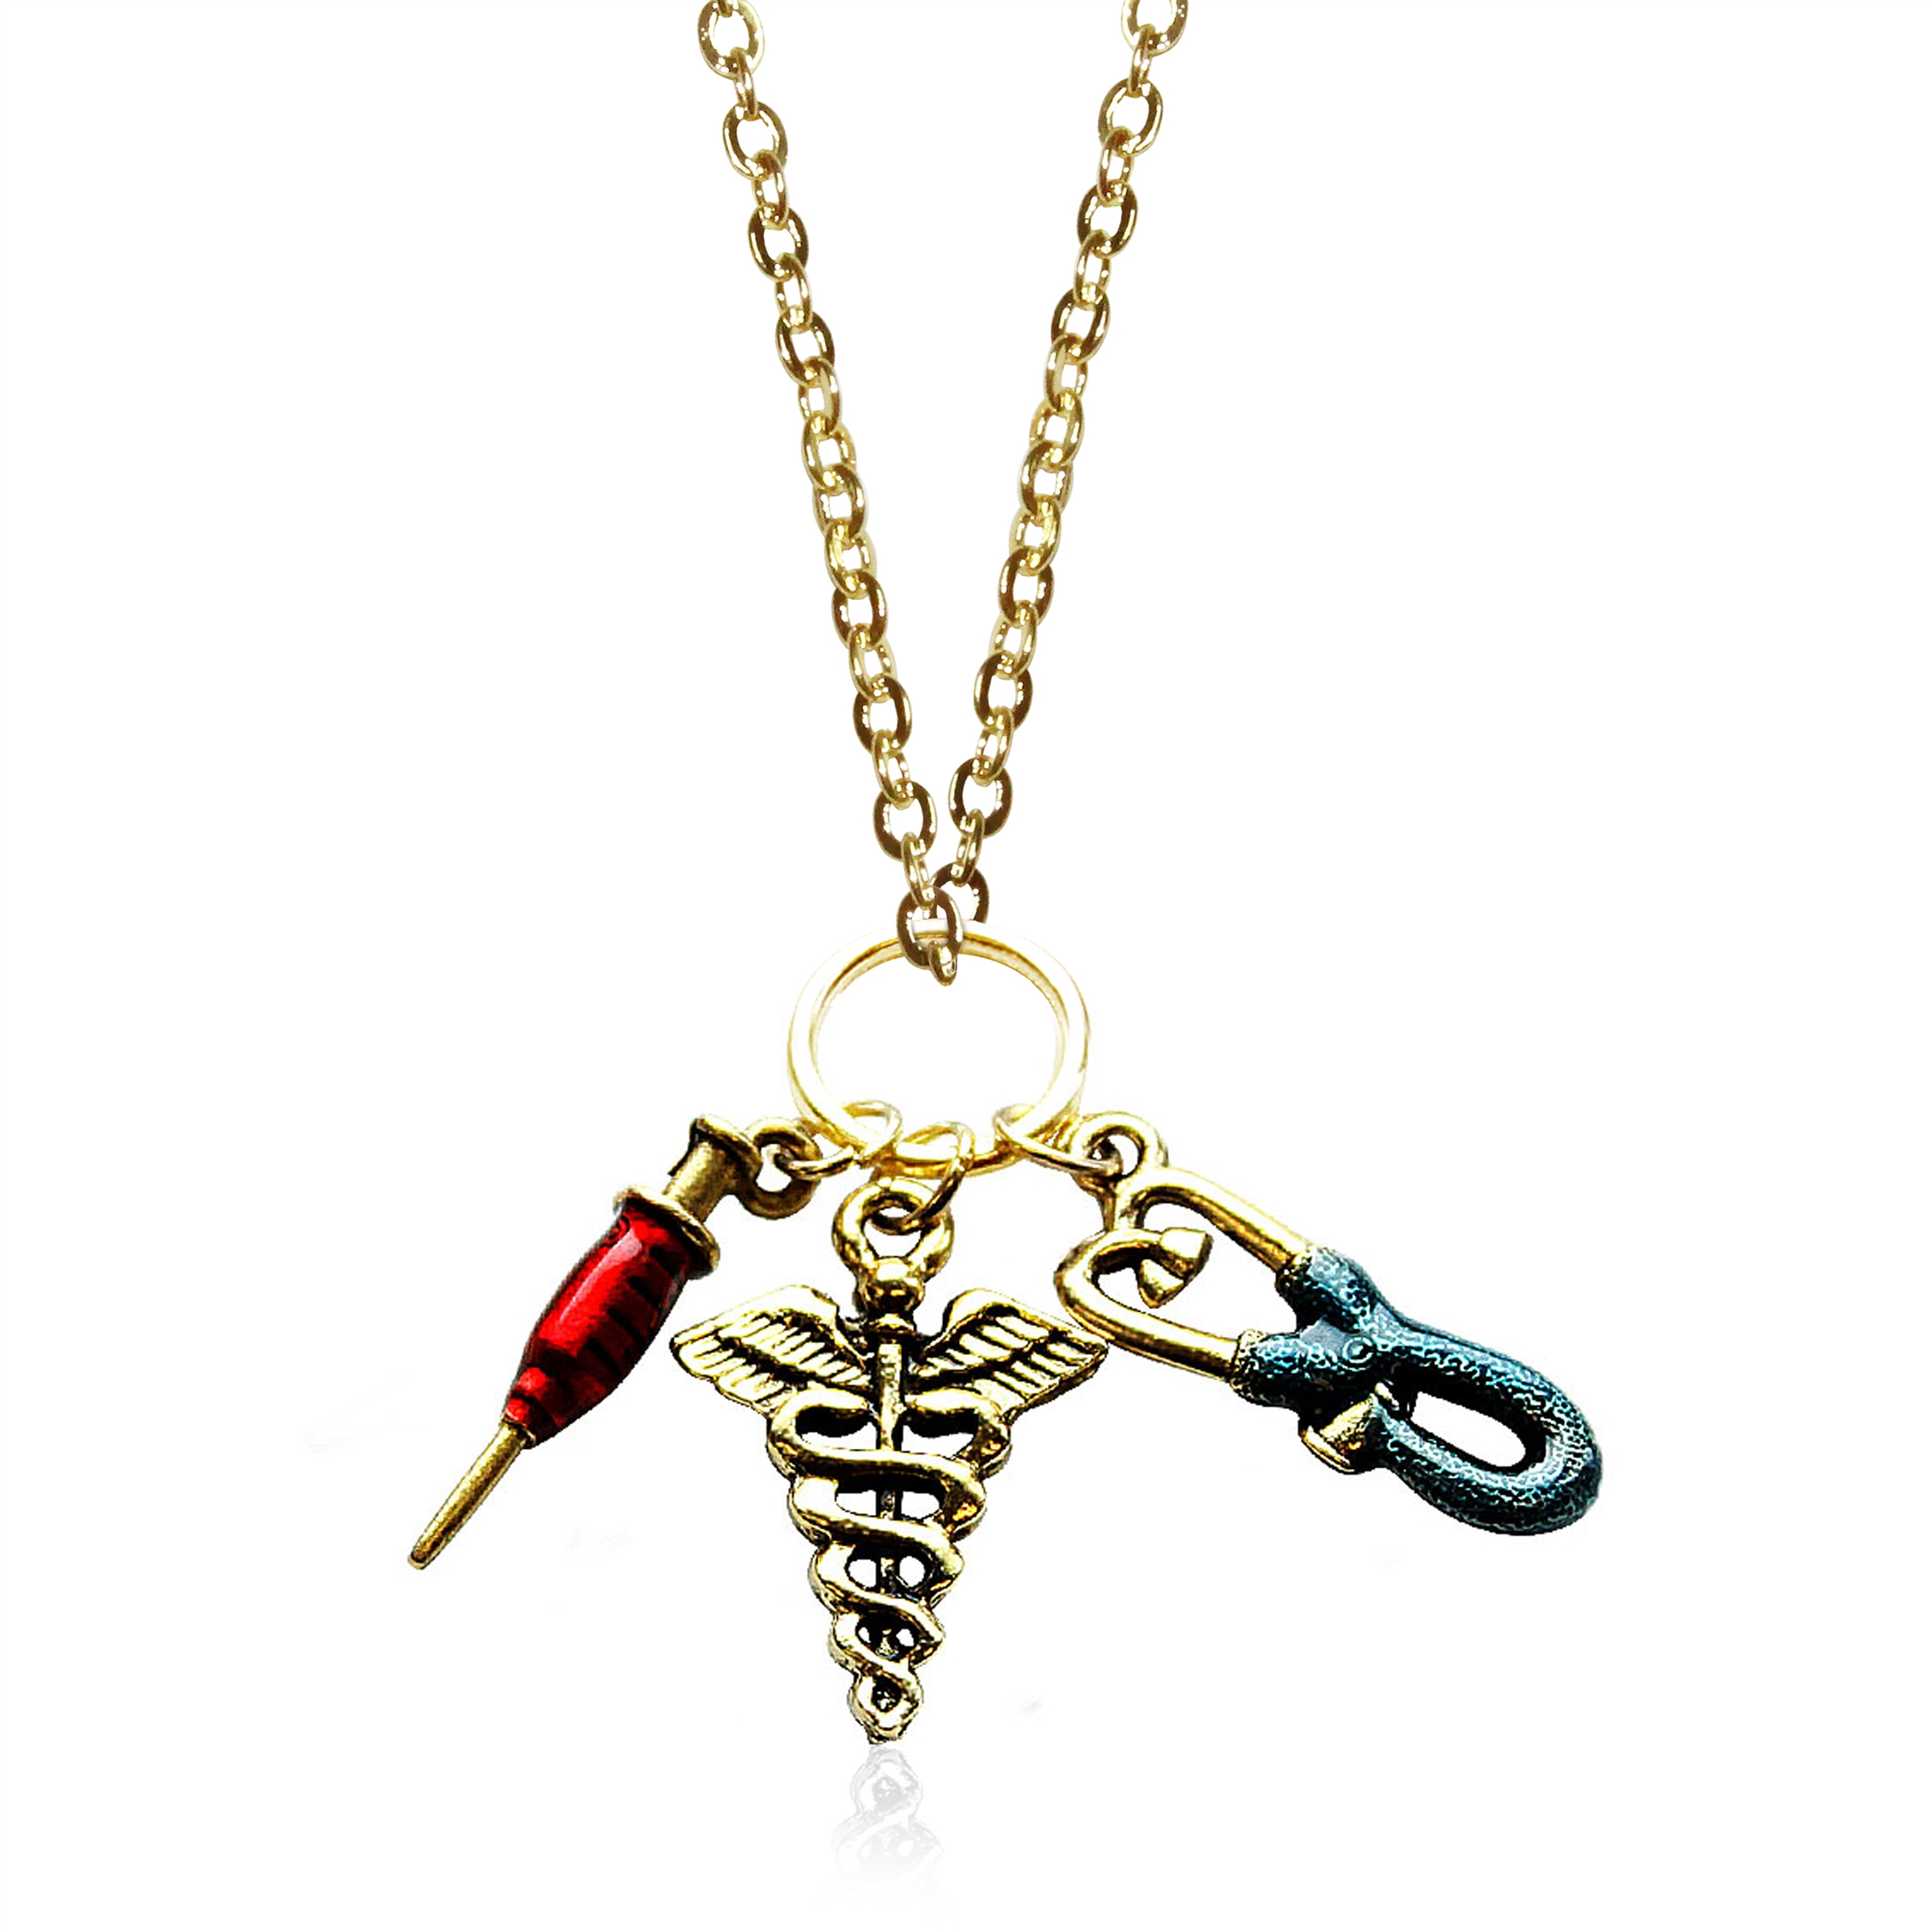 Gifts Nurse Charm Necklace in Gold